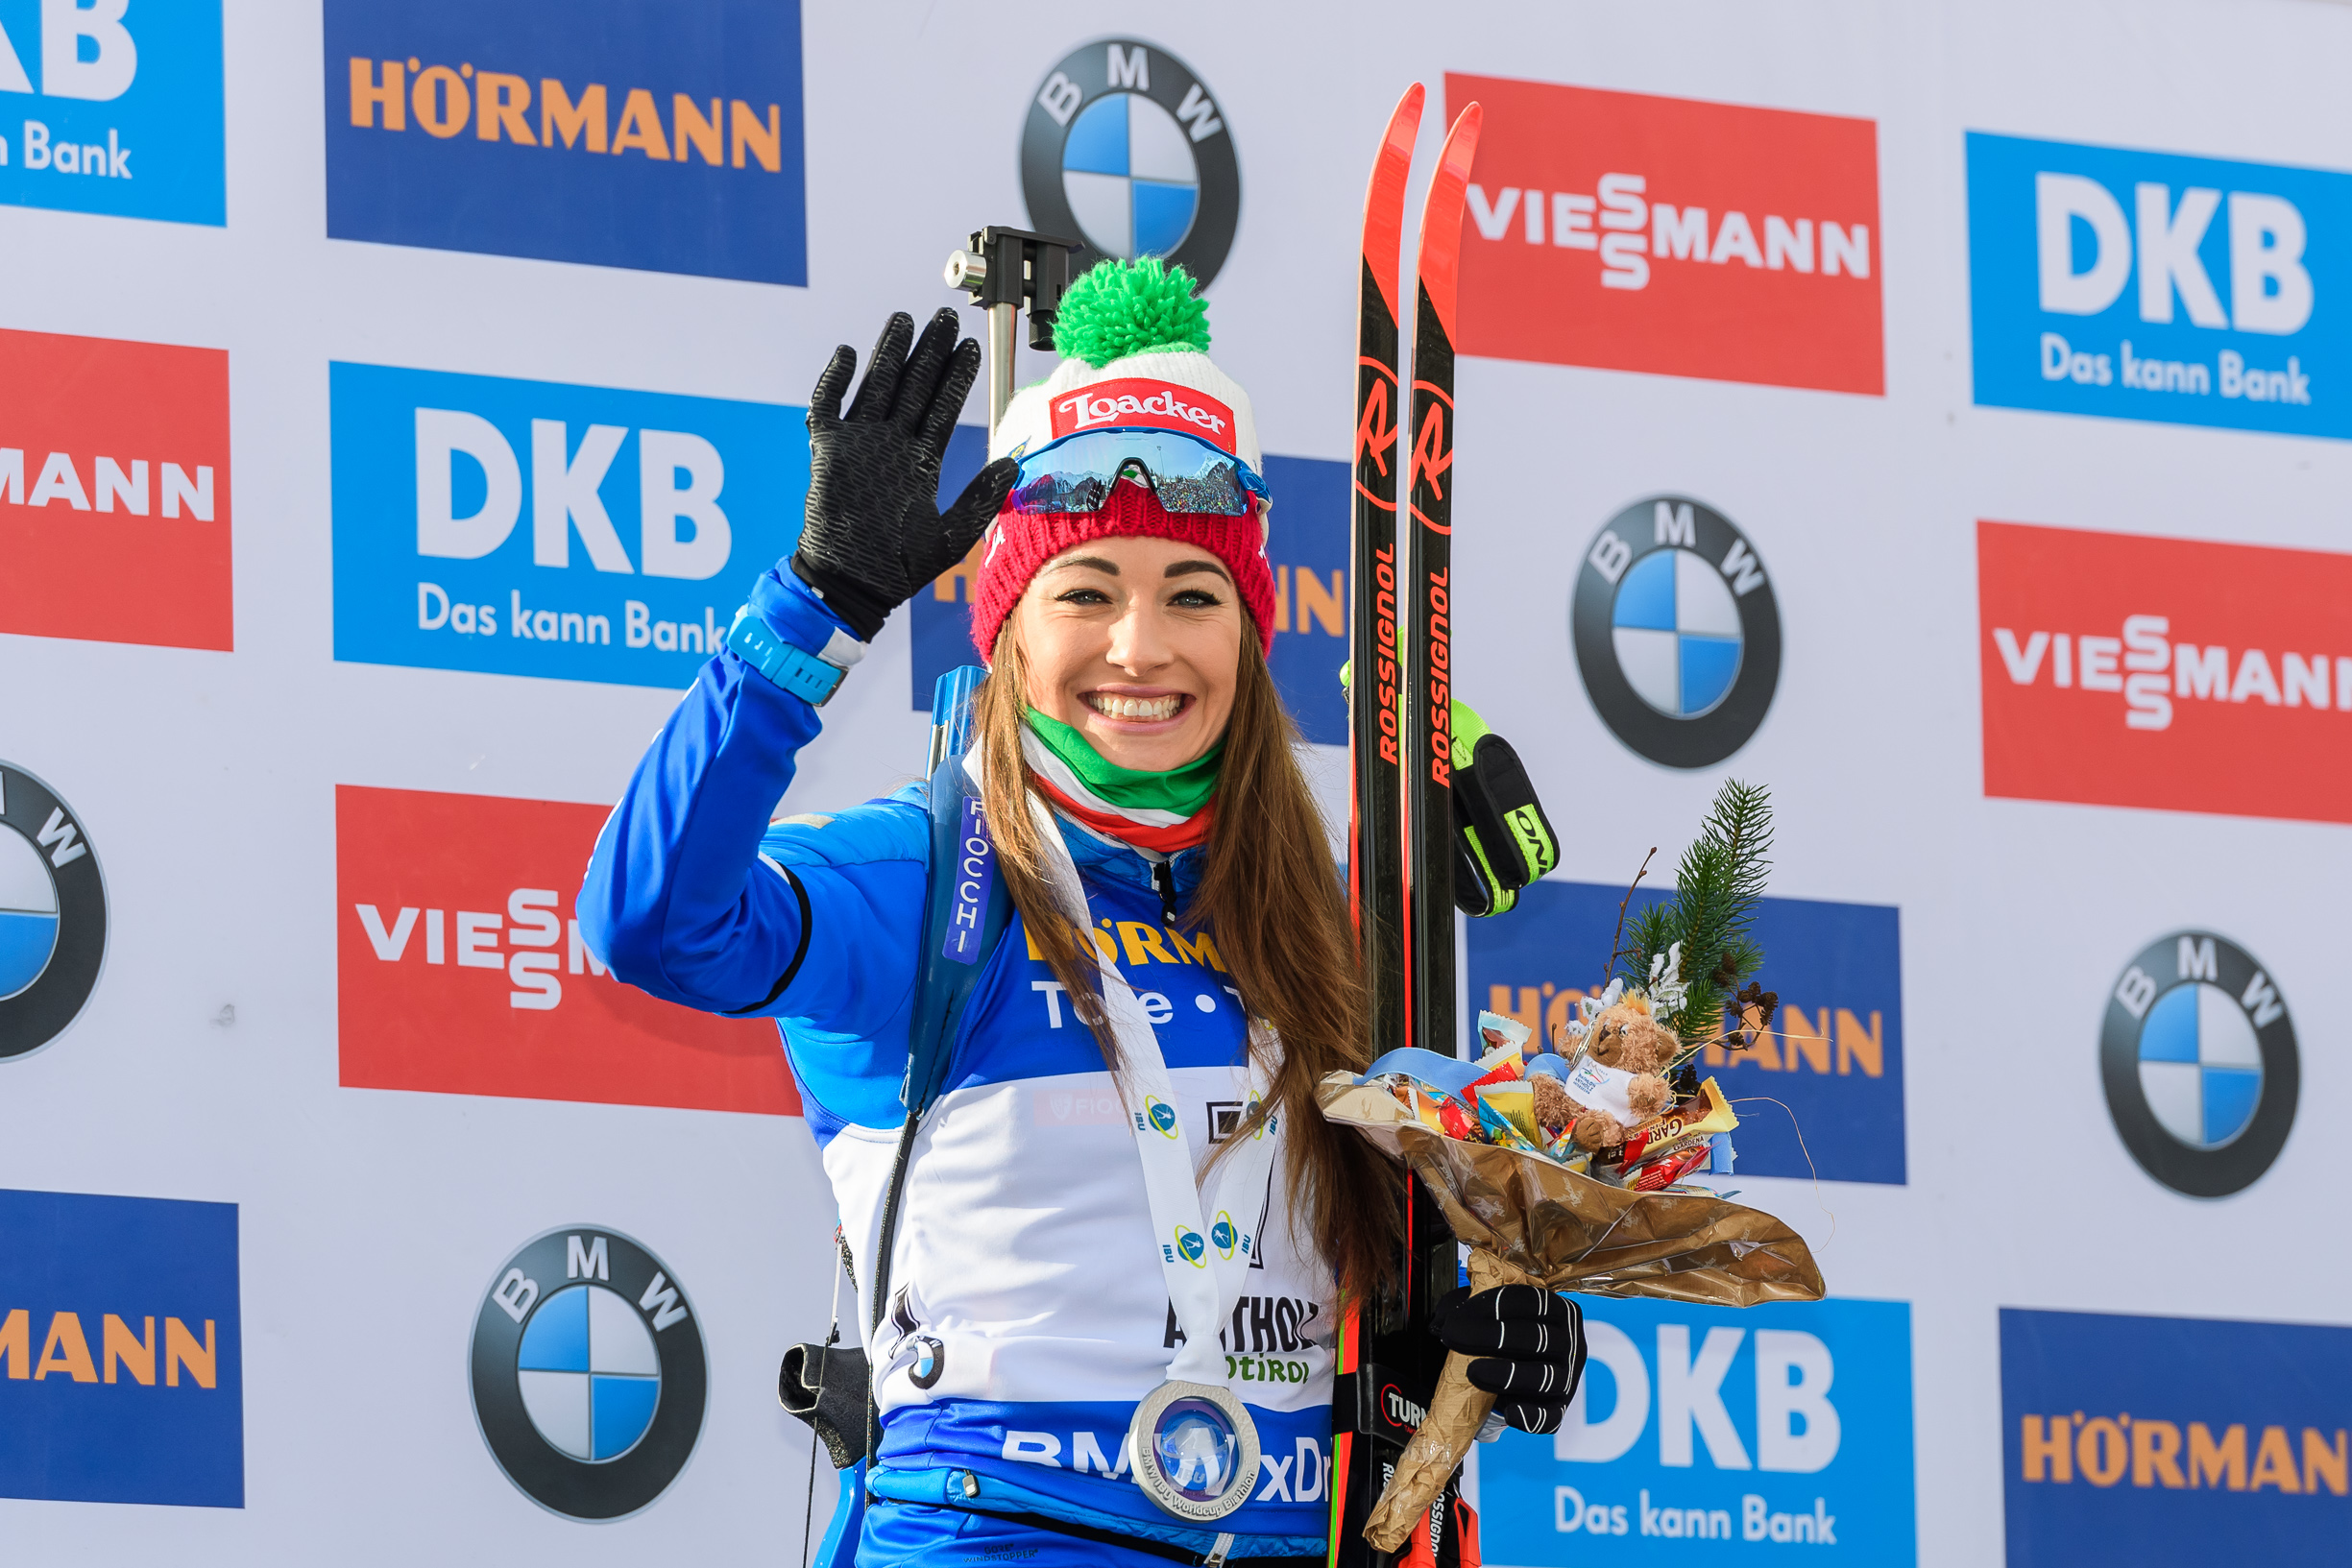 ITALY SECURE EIGHTH PODIUM IN ANTERSELVA